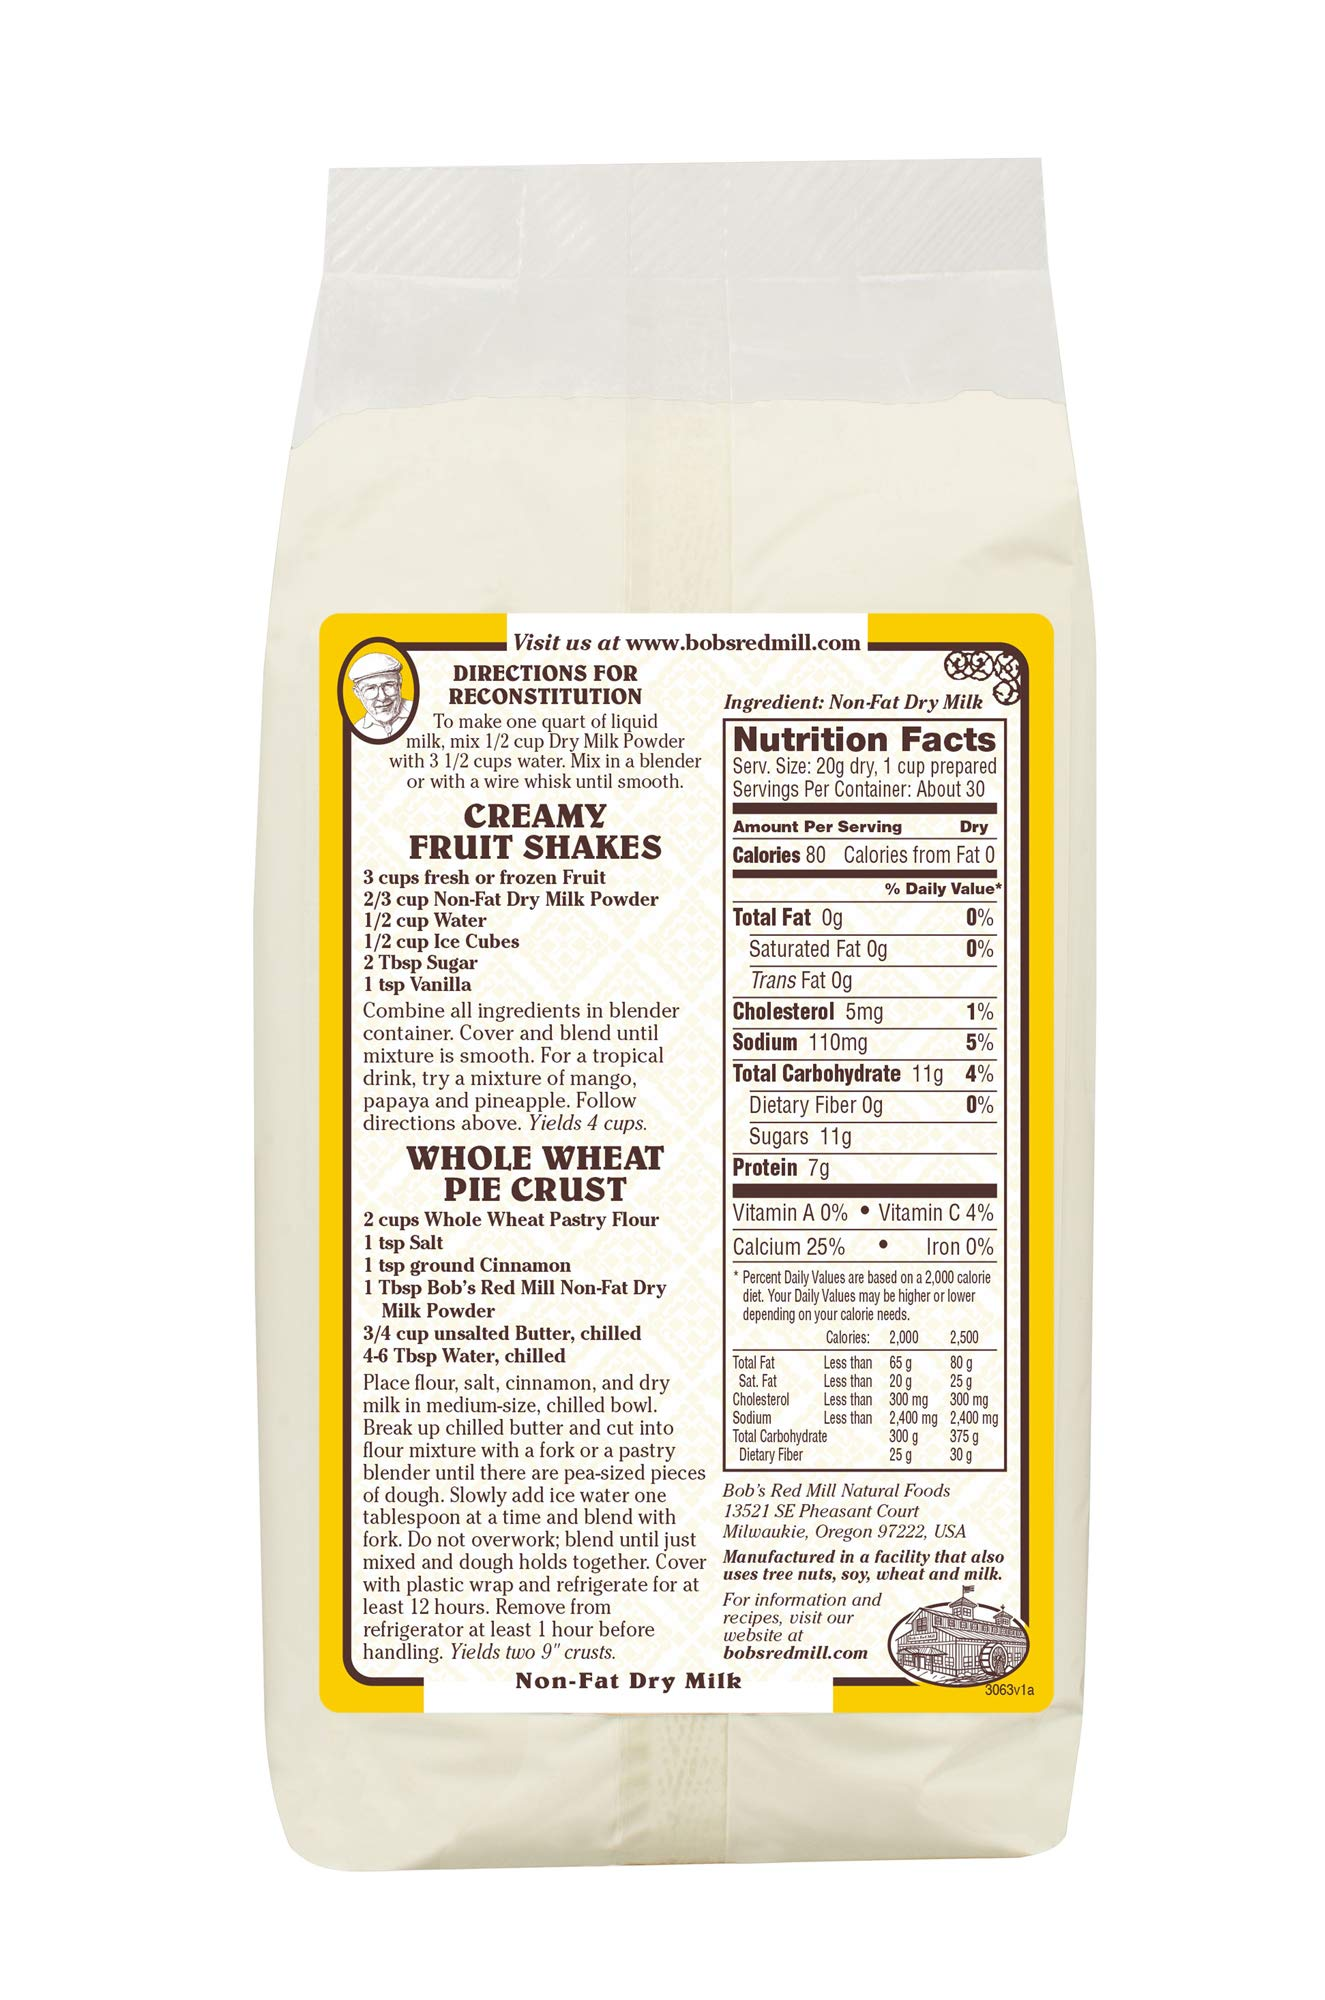 Bob's Red Mill Non-Fat Dry Milk Powder, 22 Oz (4 Pack) by Bob's Red Mill (Image #2)